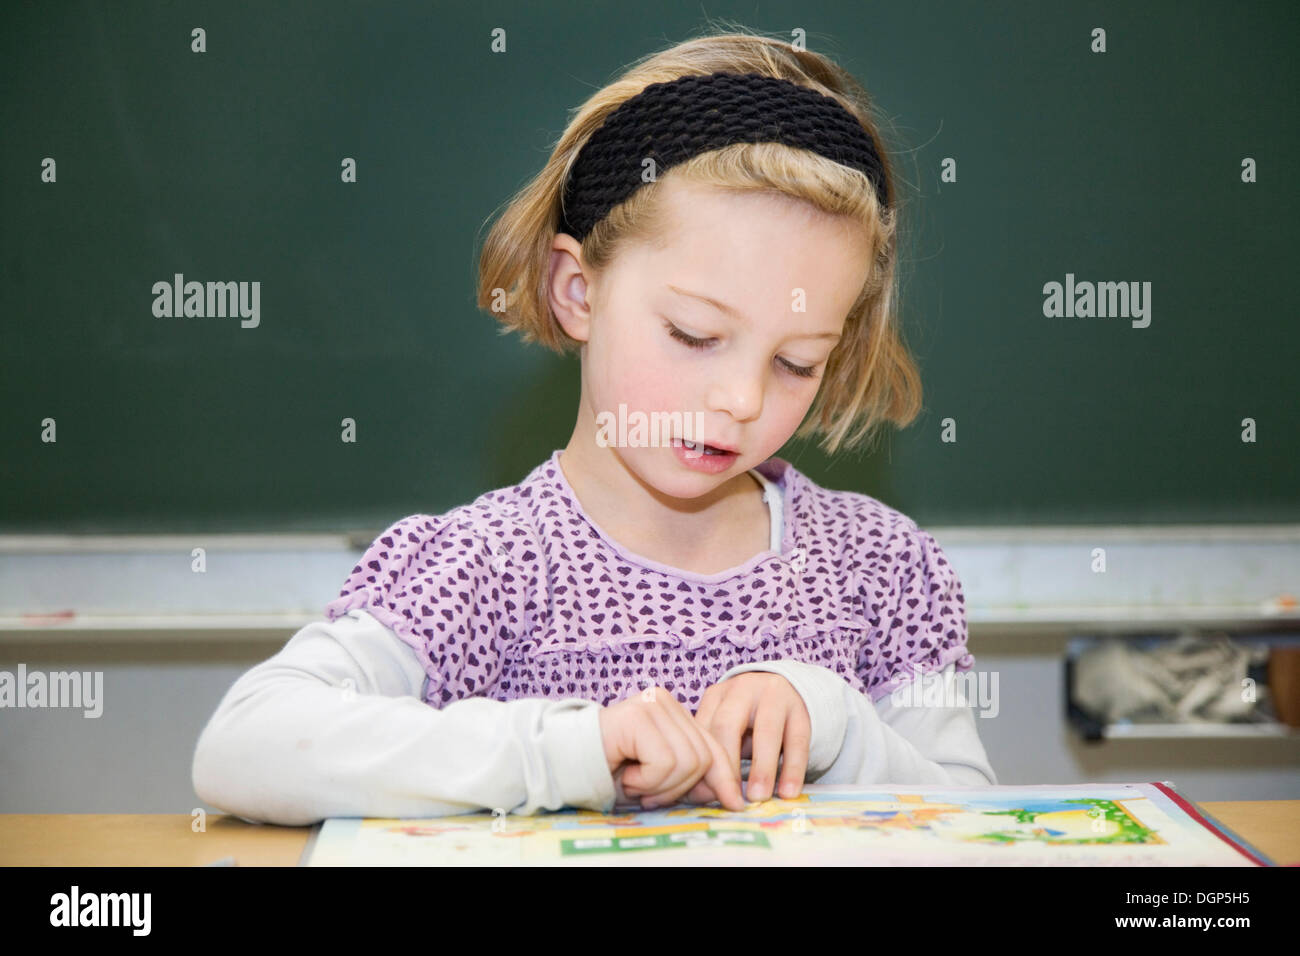 Girls focused on reading during class - Stock Image